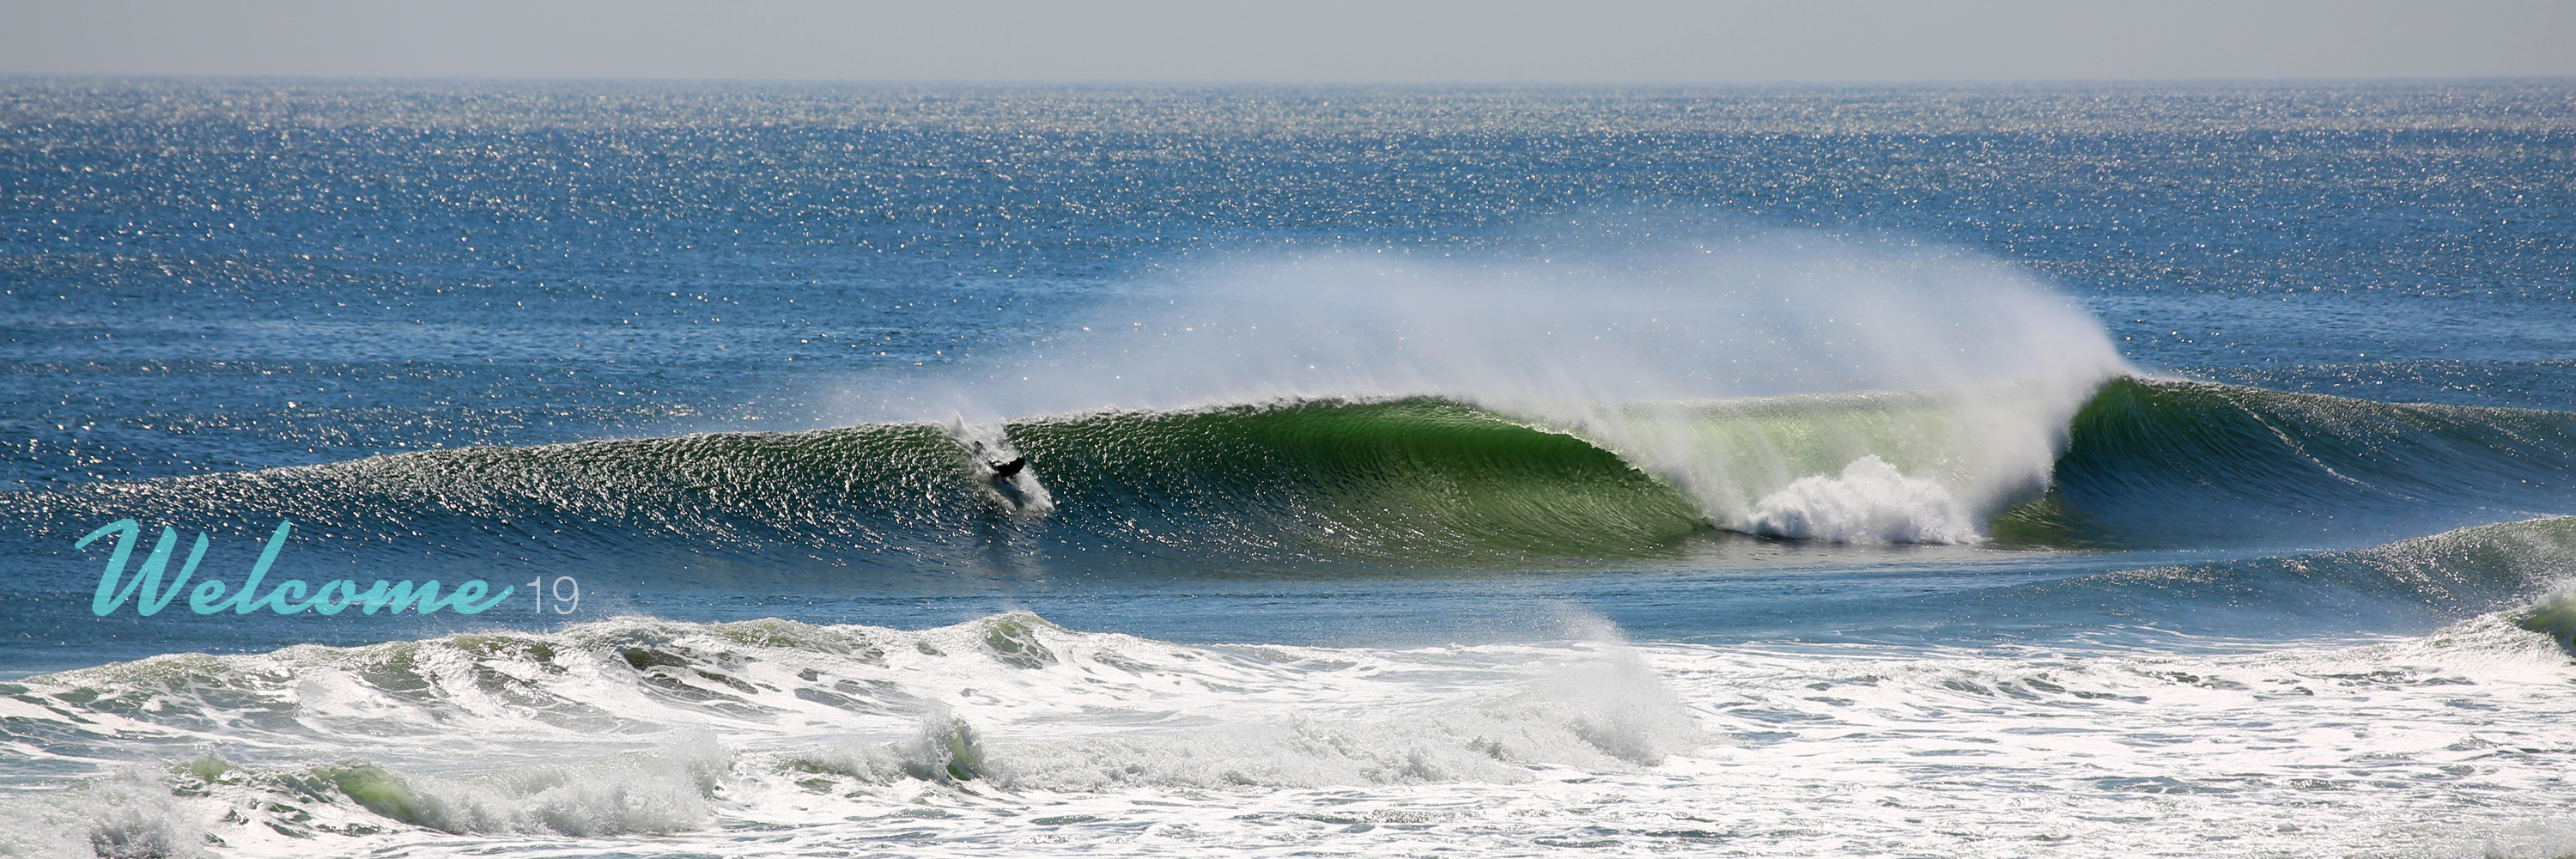 New Jersey Surf Camp, Surf Lessons, Rentals, Yoga